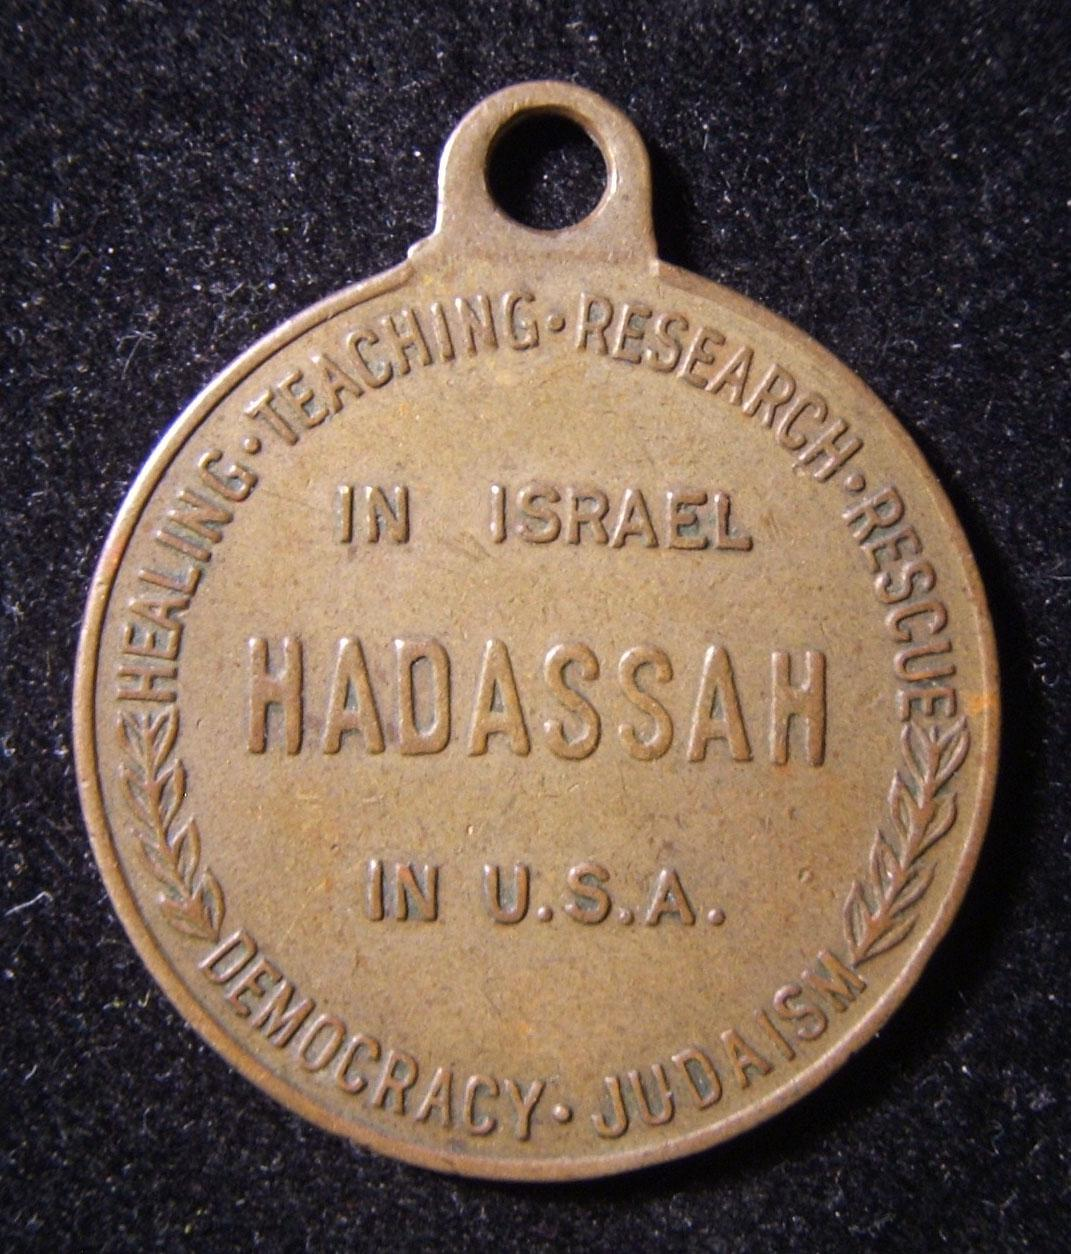 US: Hadassah medical organization token, circa. 1960s; bronze; not maker-marked; size: 28.5mm x 34mm; weight: 7.1g. Obv: leg